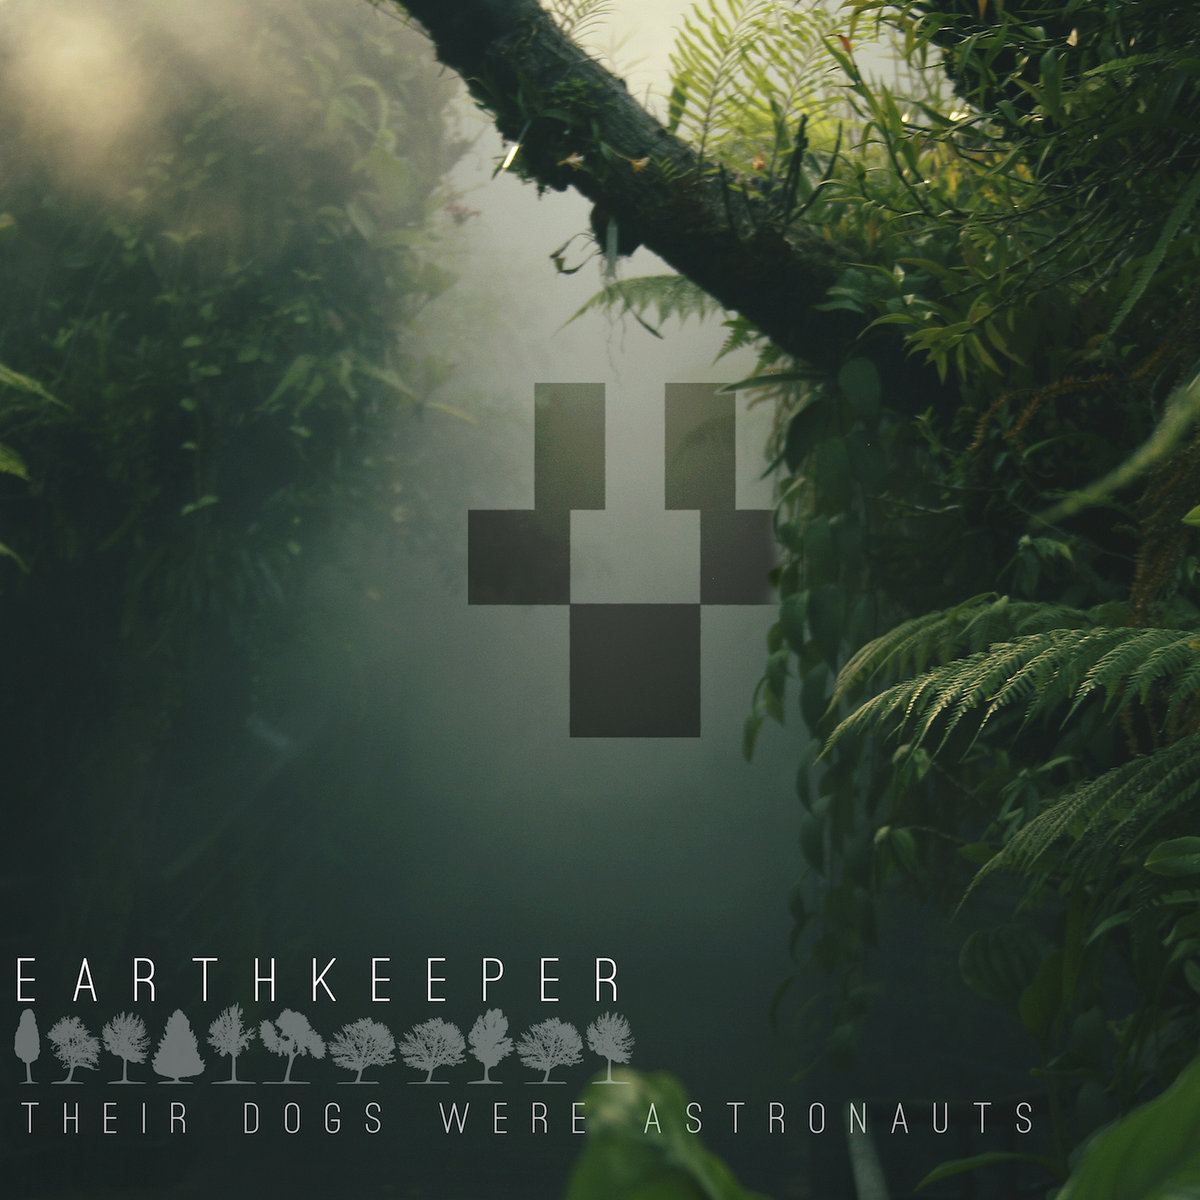 Their Dogs Were Astronauts - Section X @ 'Earthkeeper' album (instrumental metal, metal)